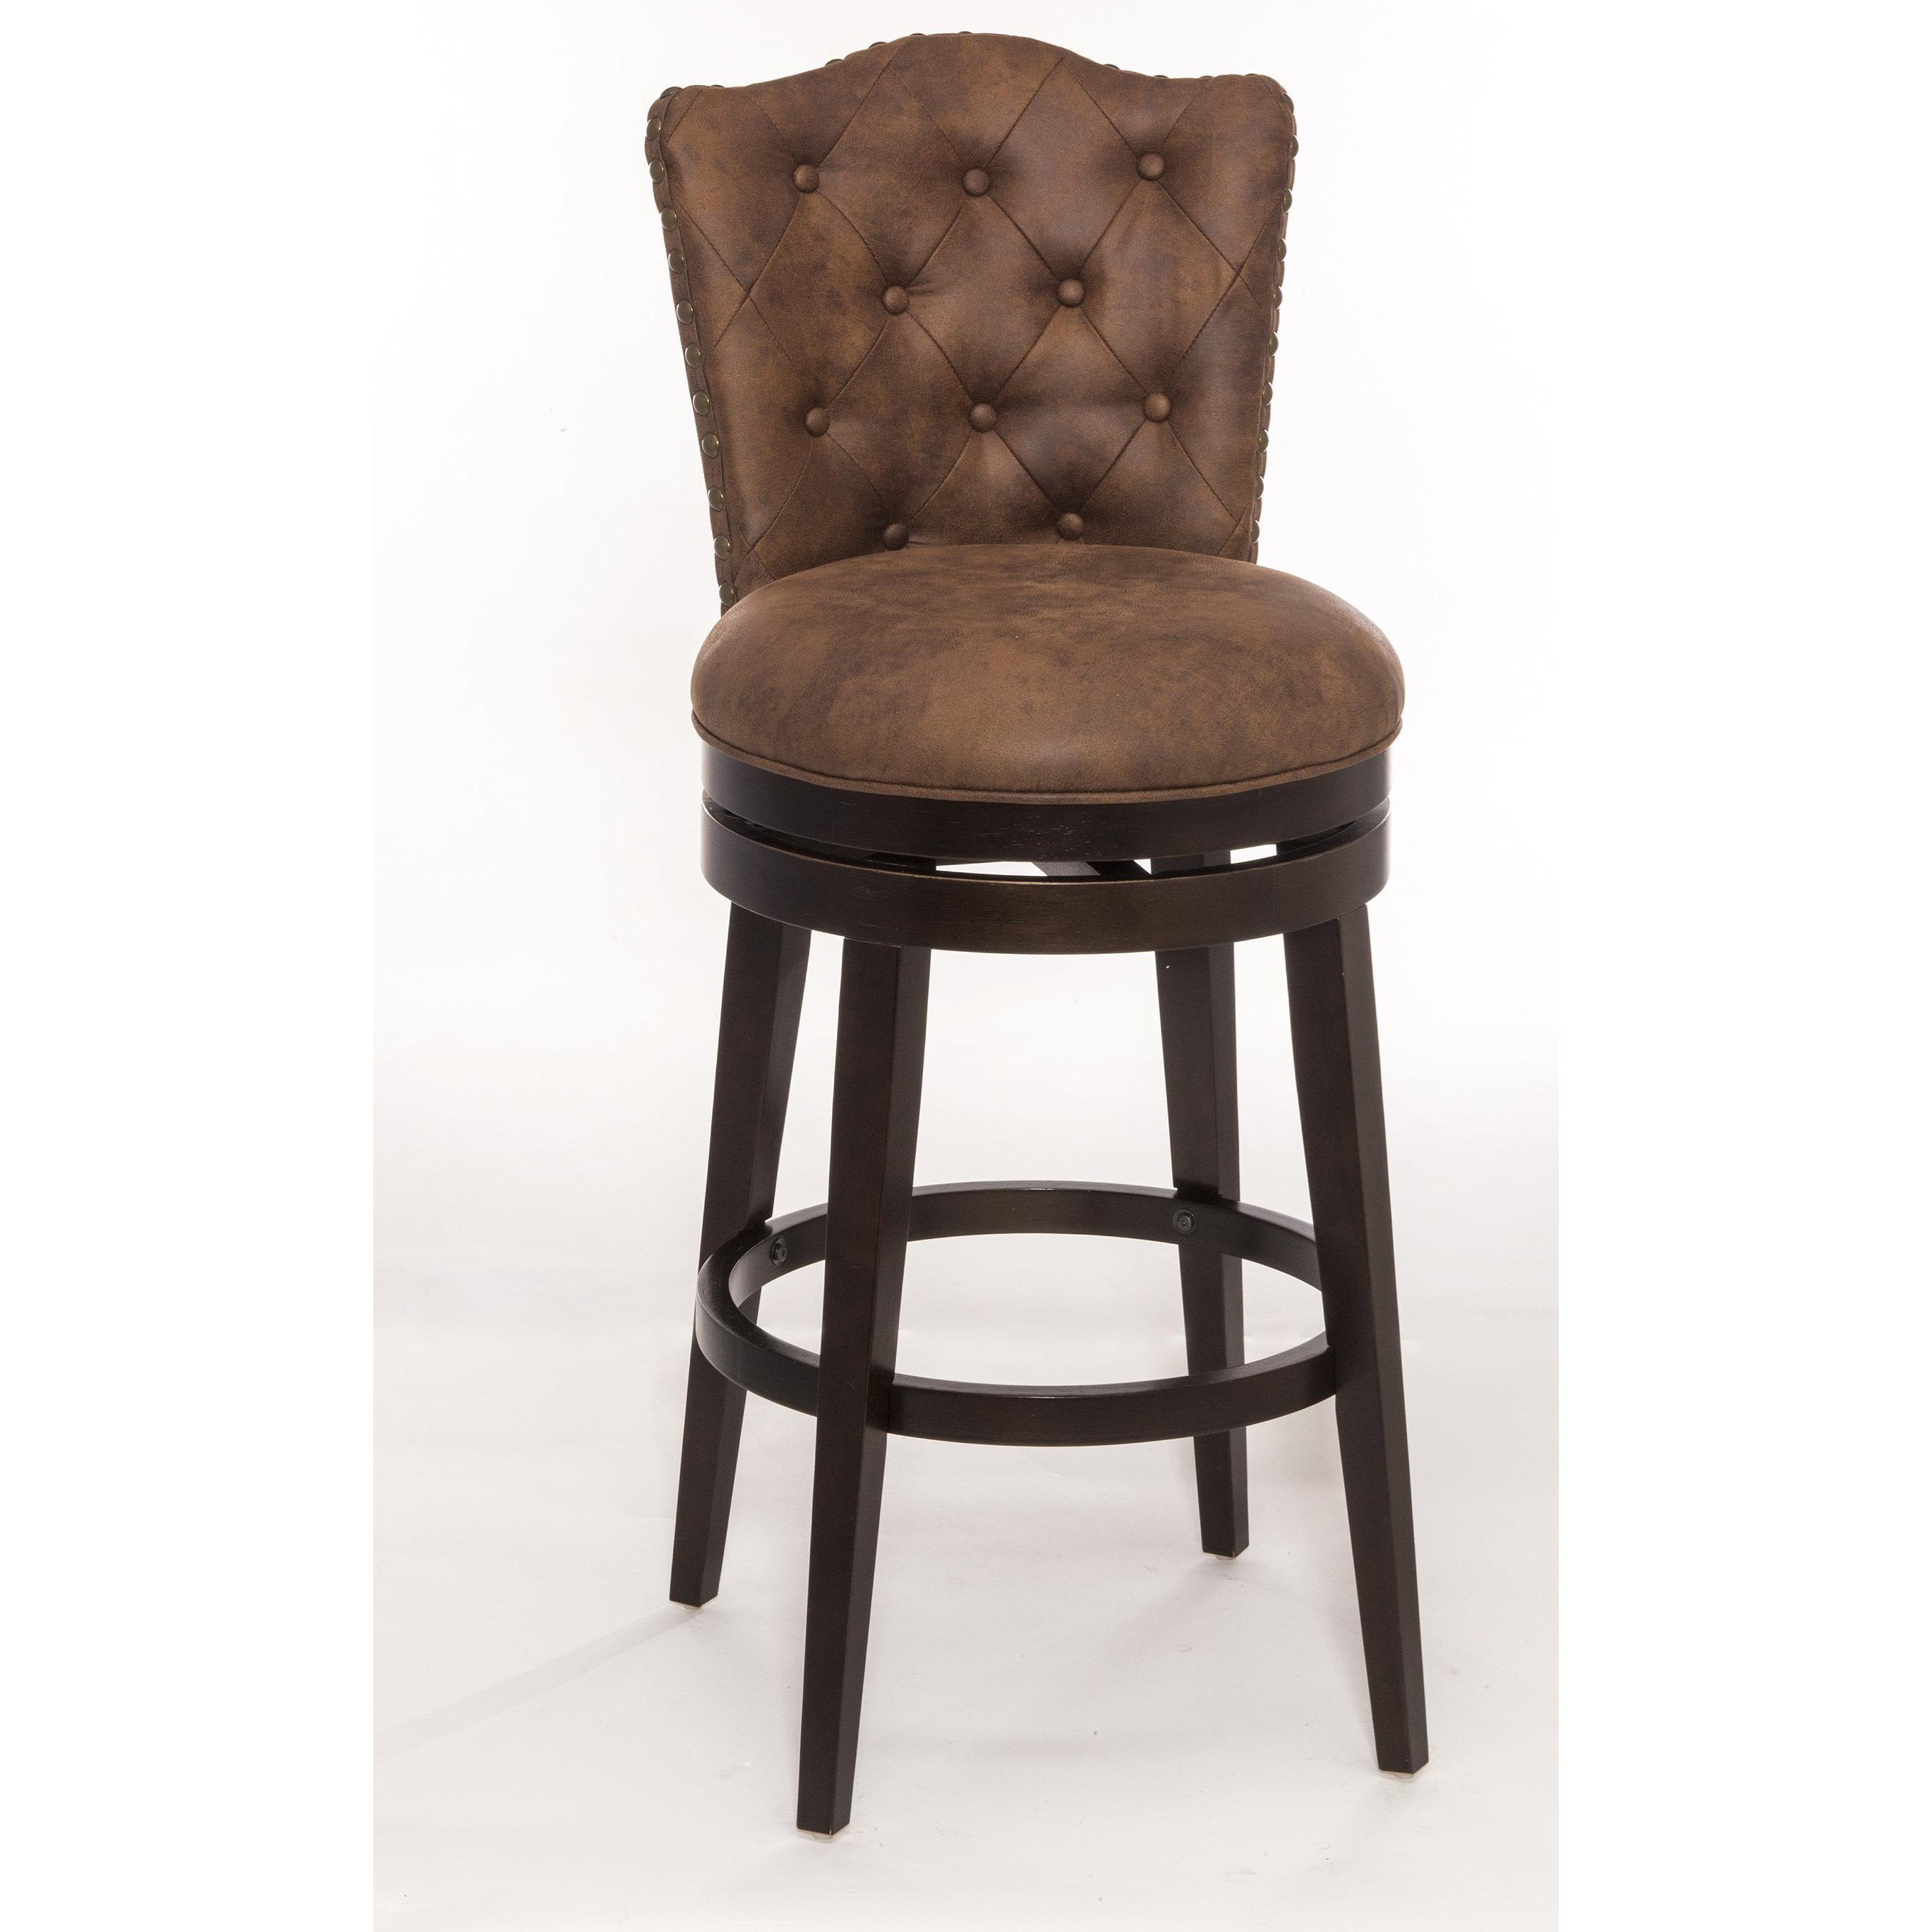 Wood stools swivel counter stool with upholstered seat morris home bar stools Morris home furniture outlet